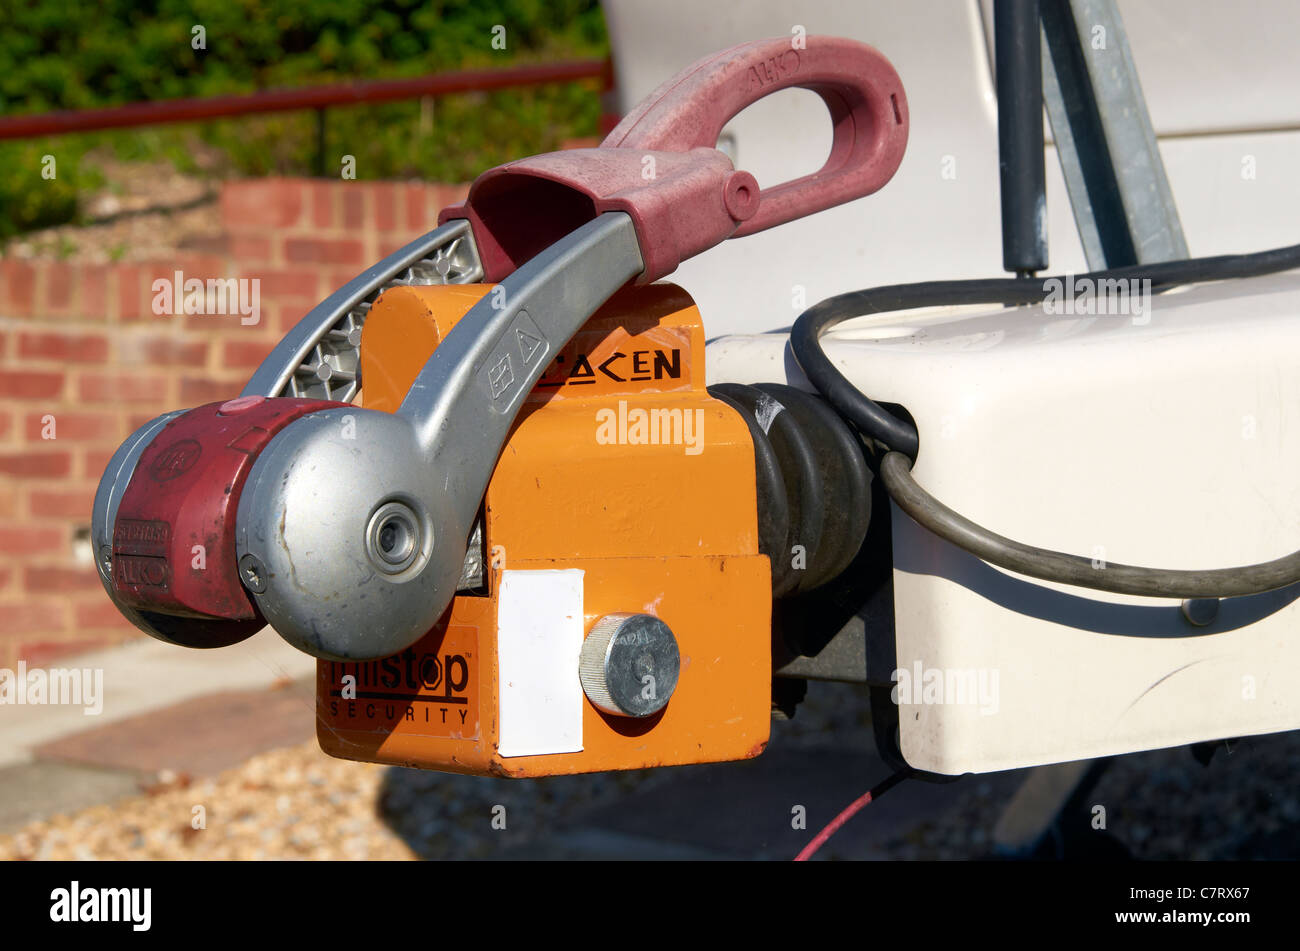 A robust caravan hitch lock on an Alko stabiliser hitch providing a high level of security during caravan storage - Stock Image